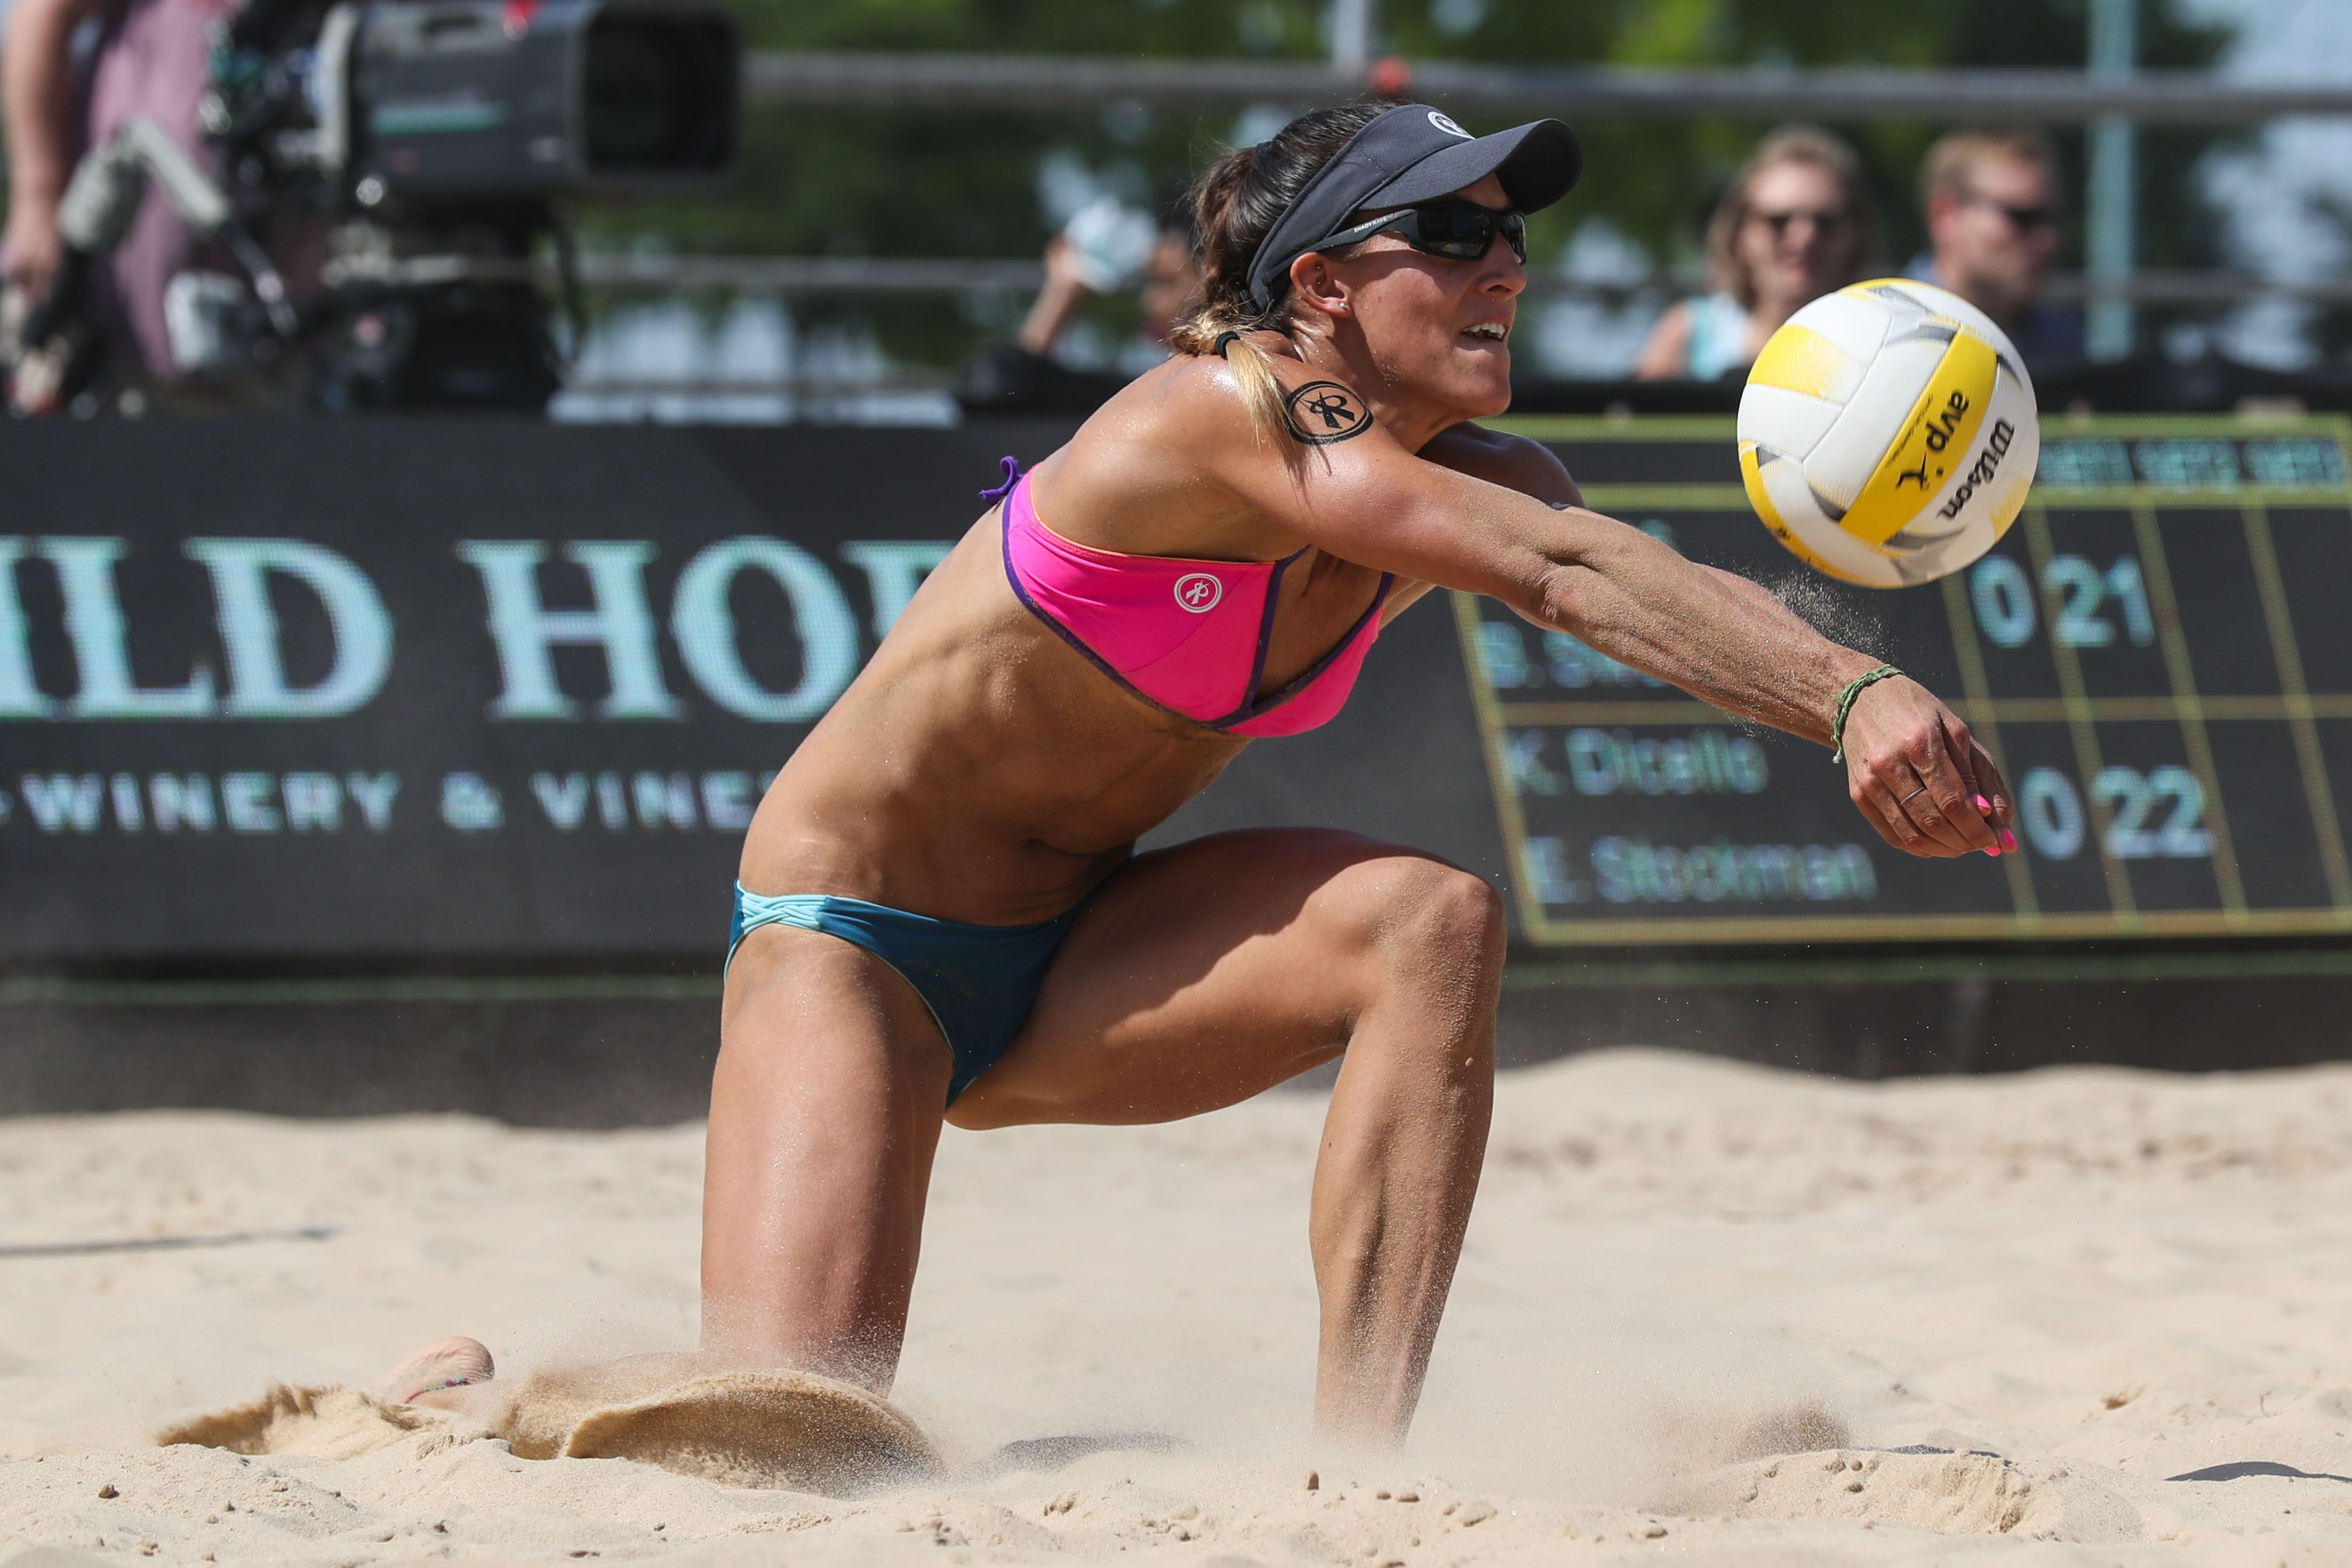 Avp Gold Series New York City Open 2017 Photo Gallery Avp Beach Volleyball Beach Volleyball Women Volleyball Volleyball Articles